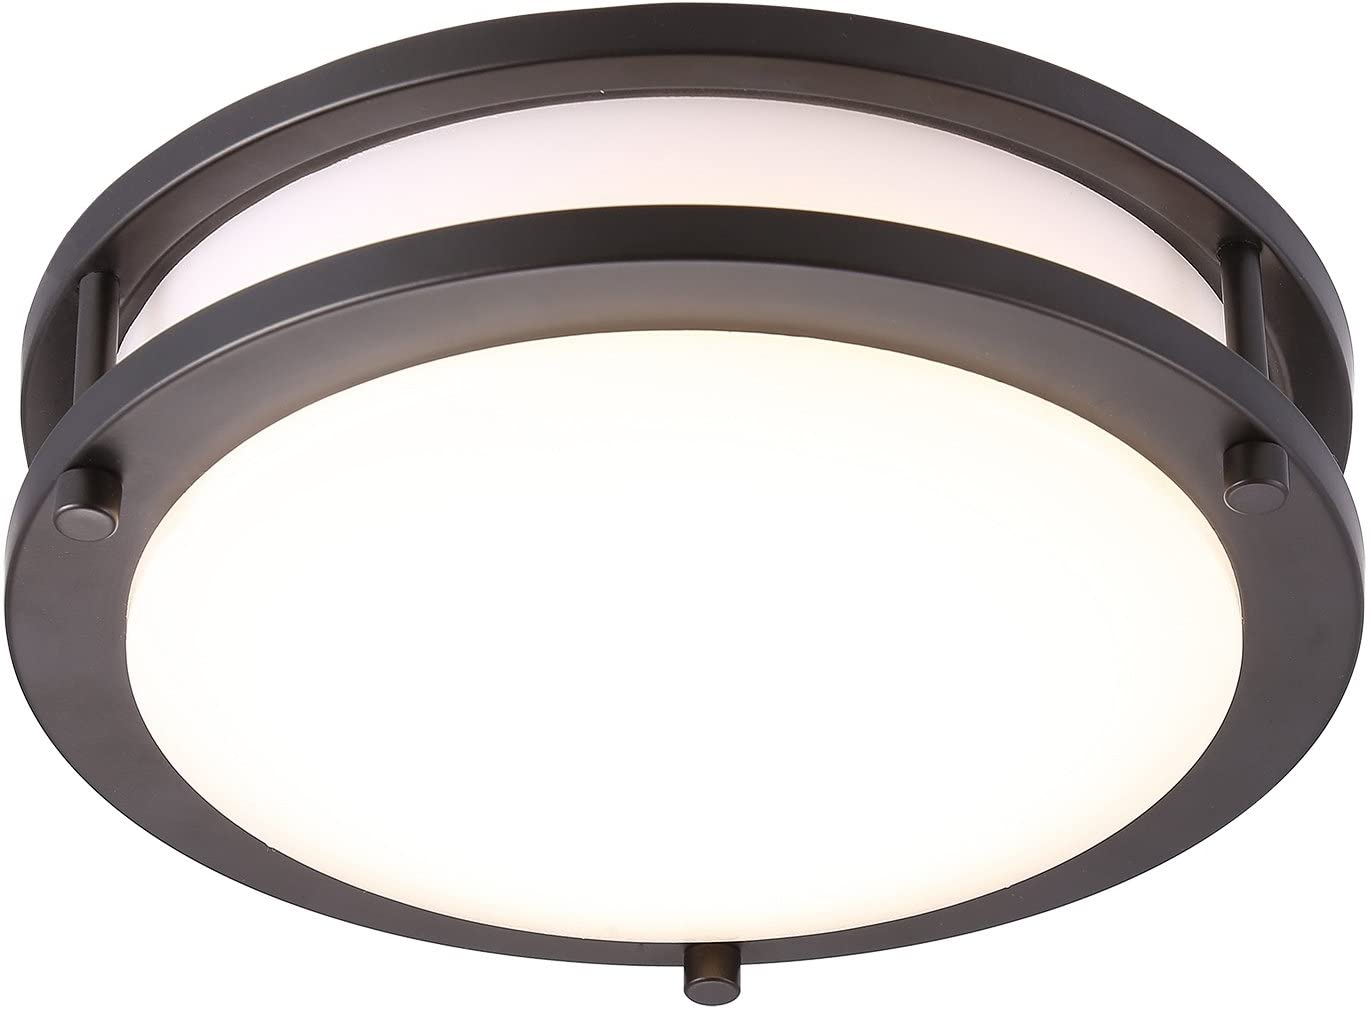 Cloudy Bay LED Flush Mount Ceiling Light,10 inch,17W